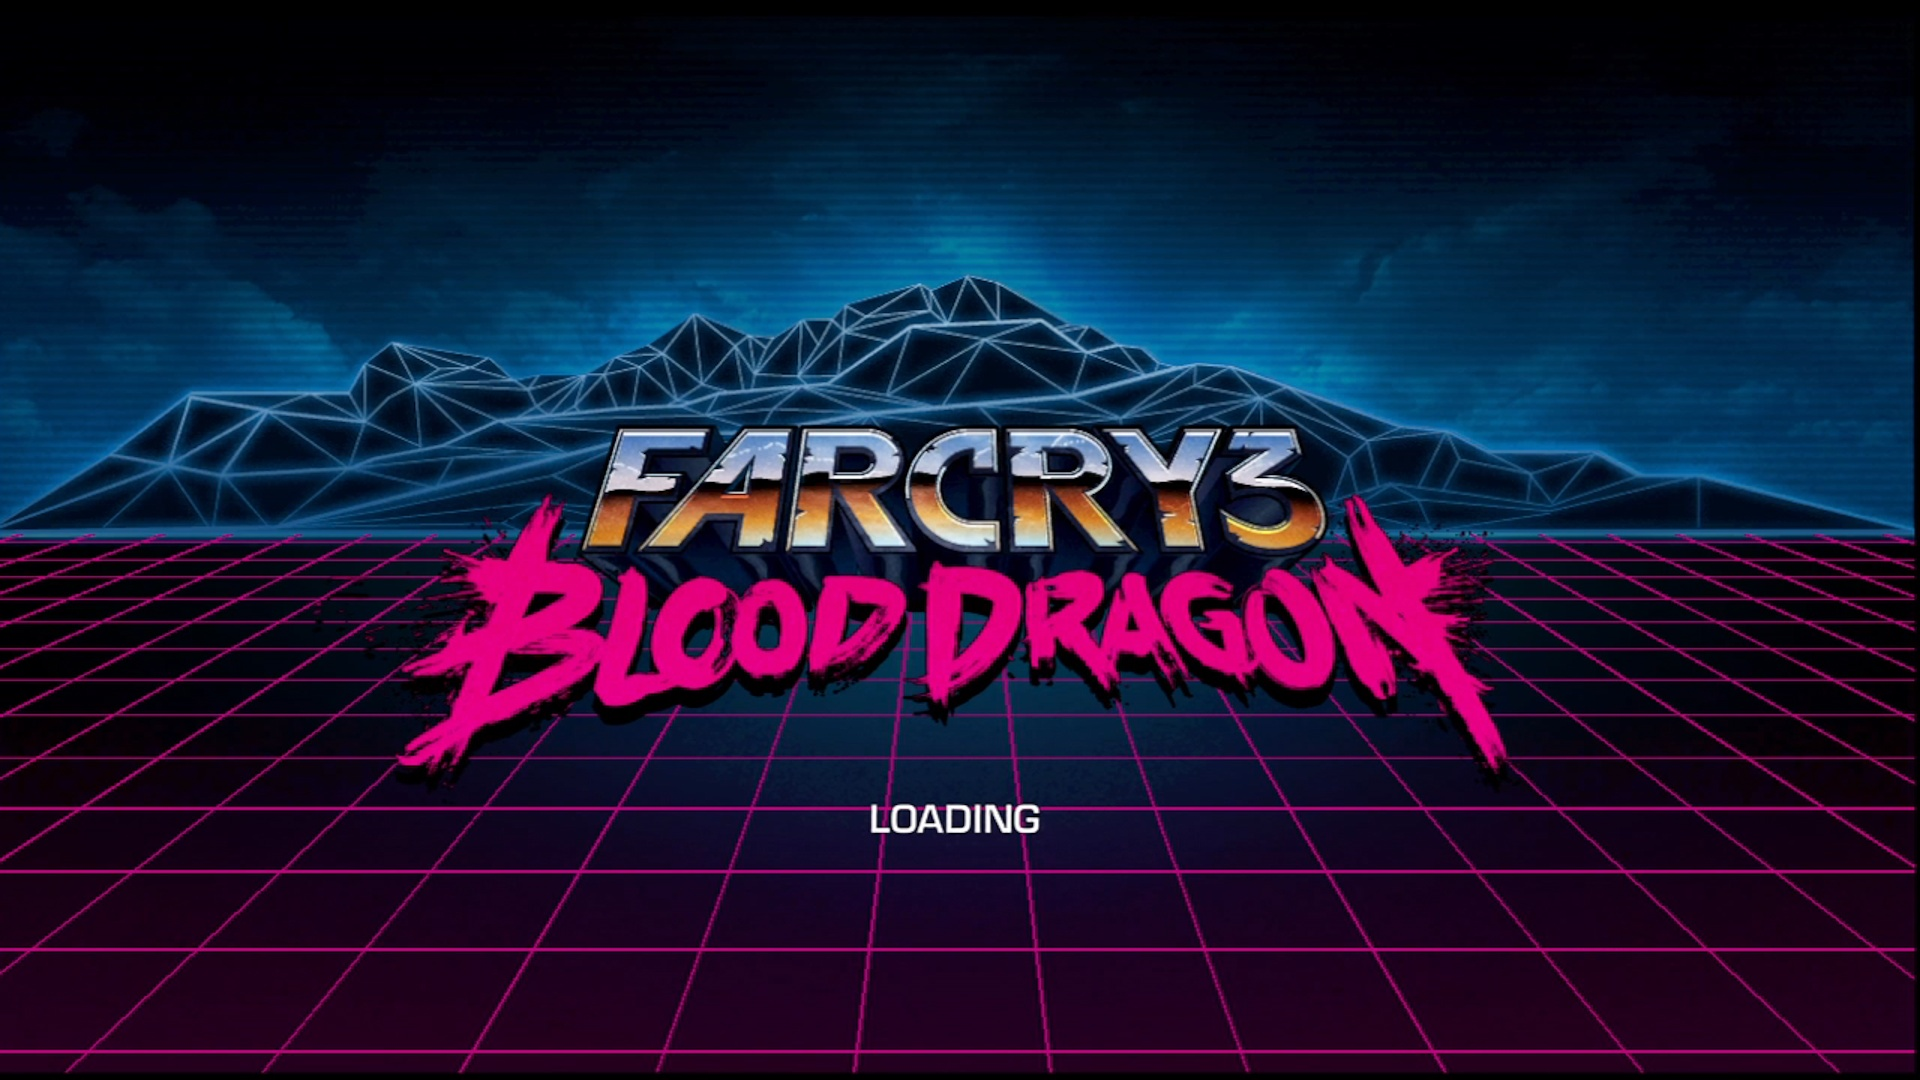 fc blood dragon feat